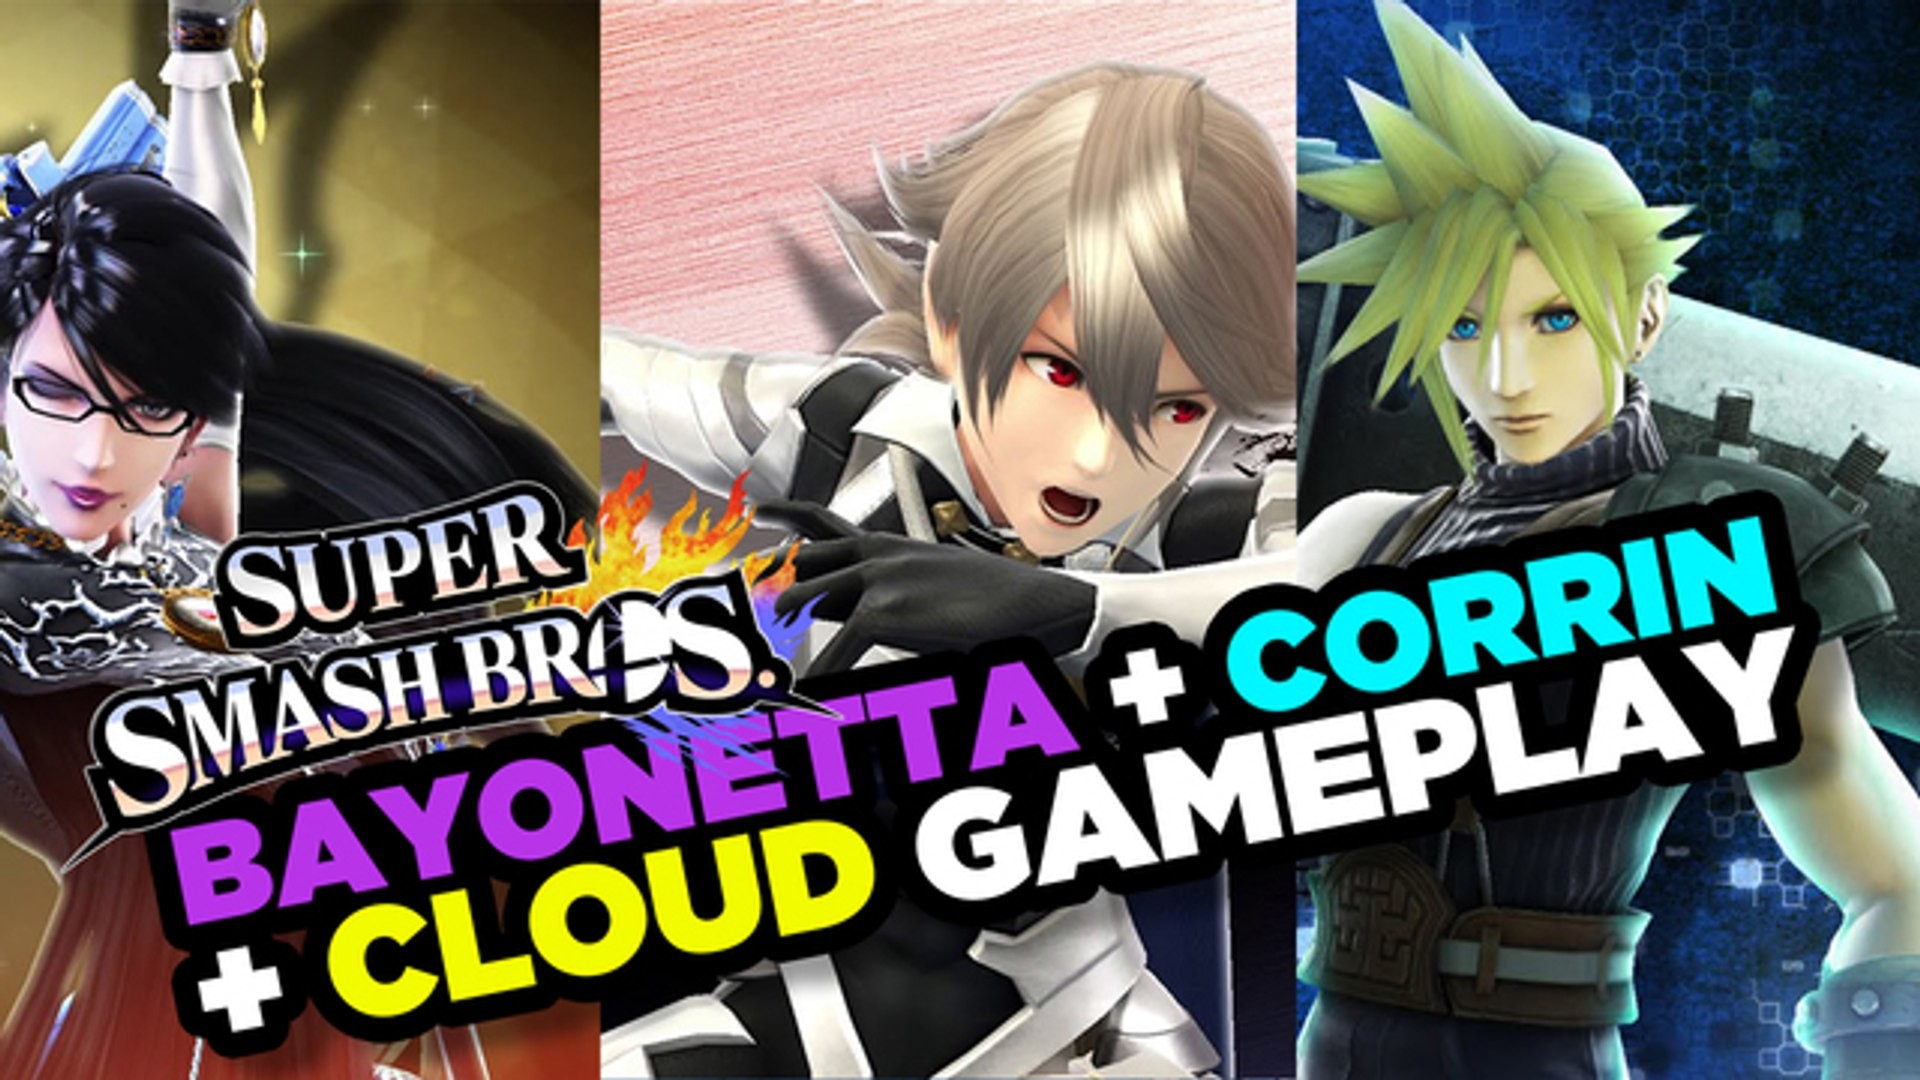 1920x1080 Bayonetta, Corrin, and Cloud Battle it Out - Super Smash Bros. Gameplay -  video dailymotion